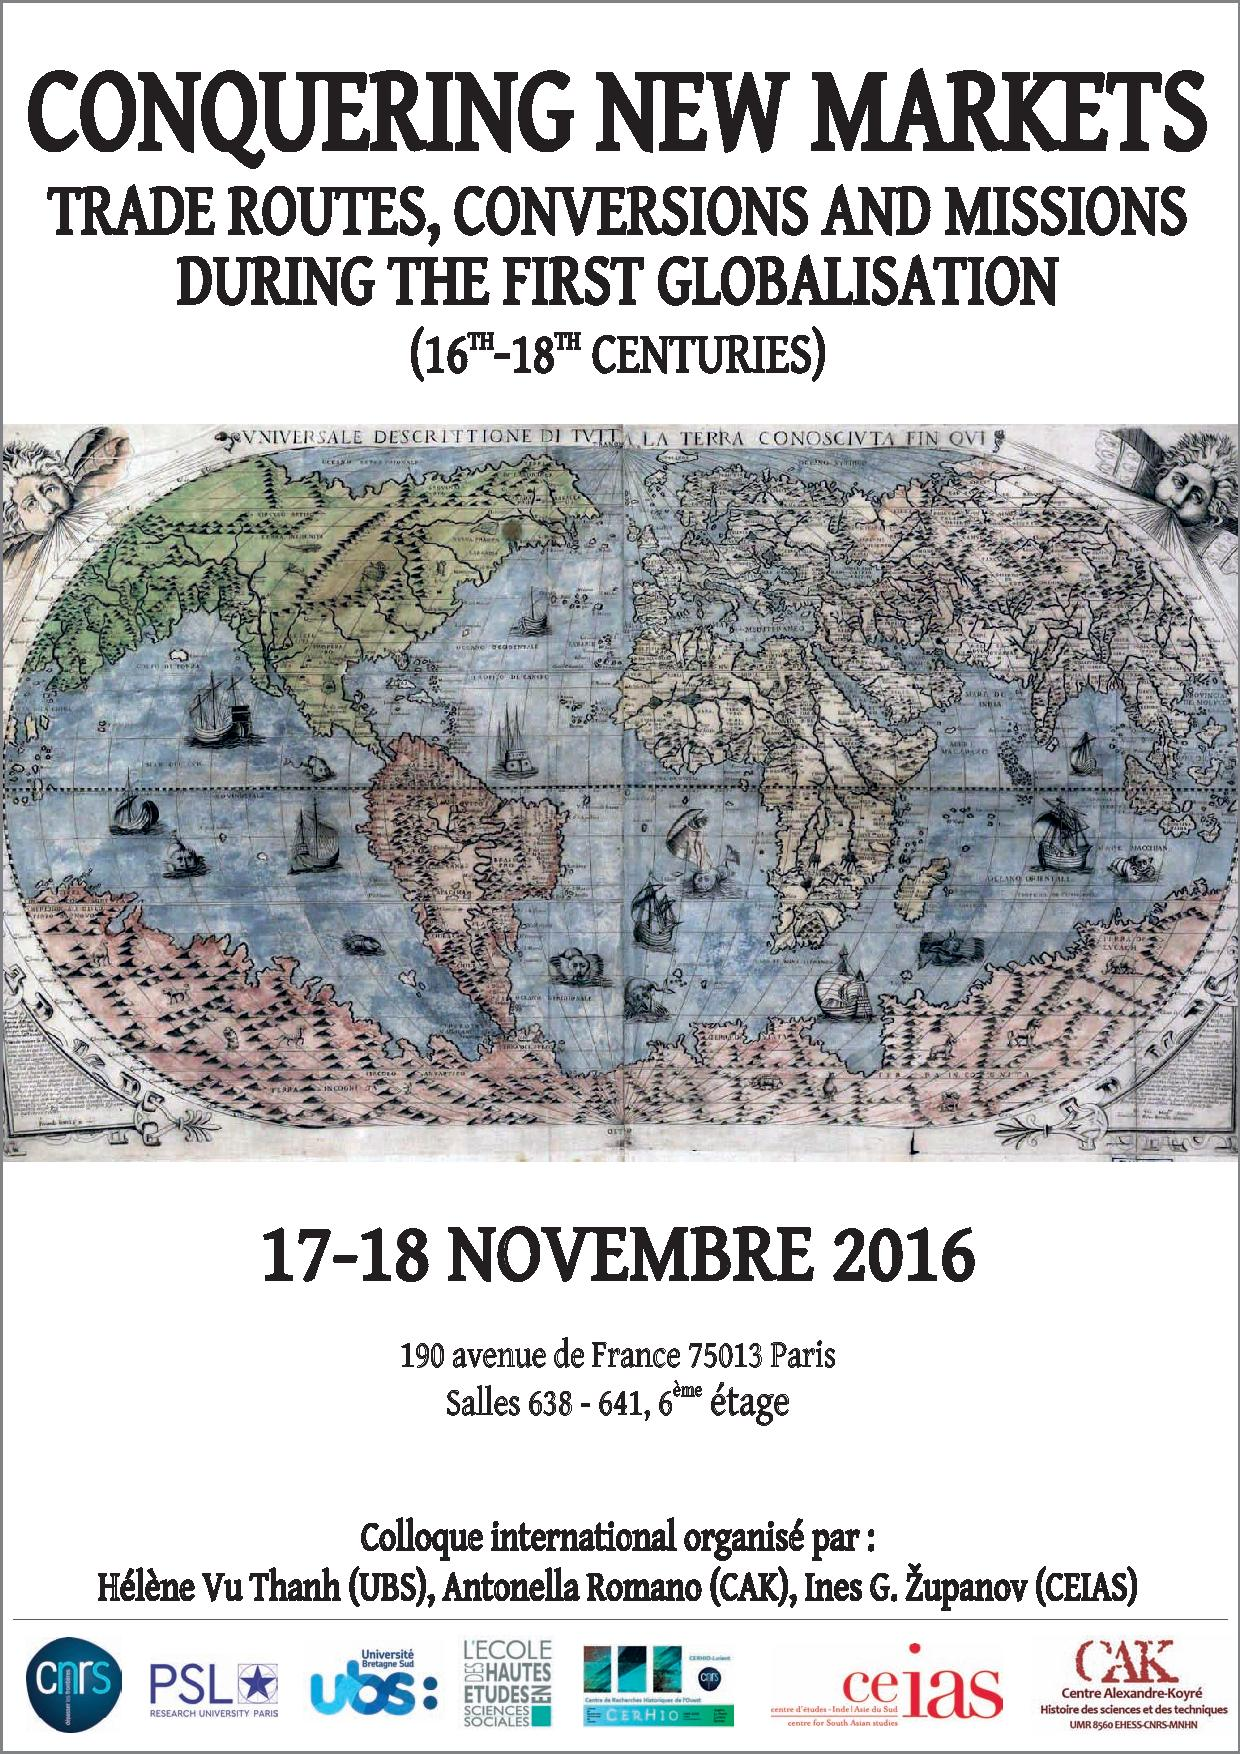 Conquering new markets. Trade routes, conversions and missions during the first globalisation (17th-18th centuries)